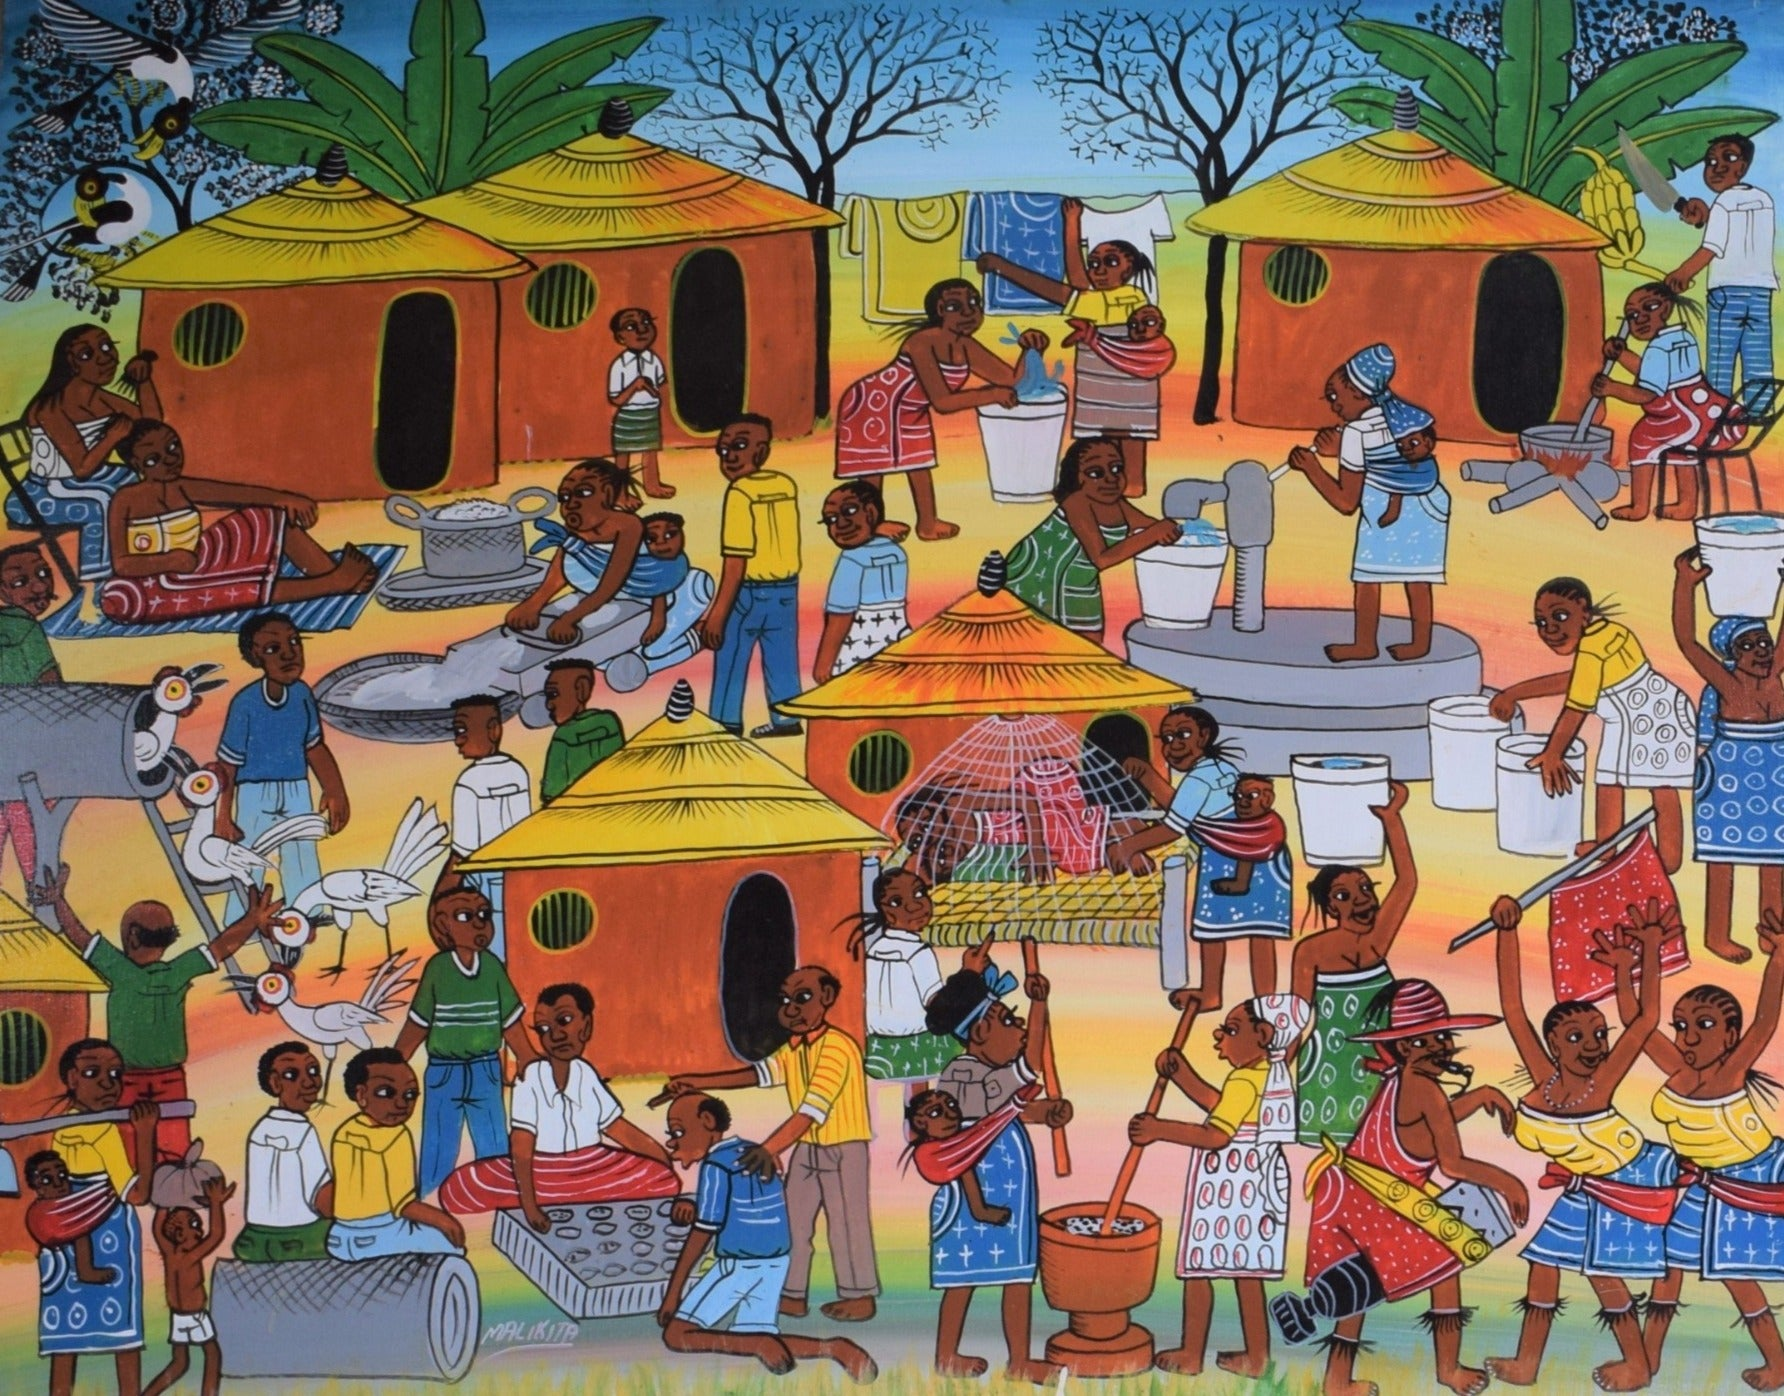 African art of villages for sale